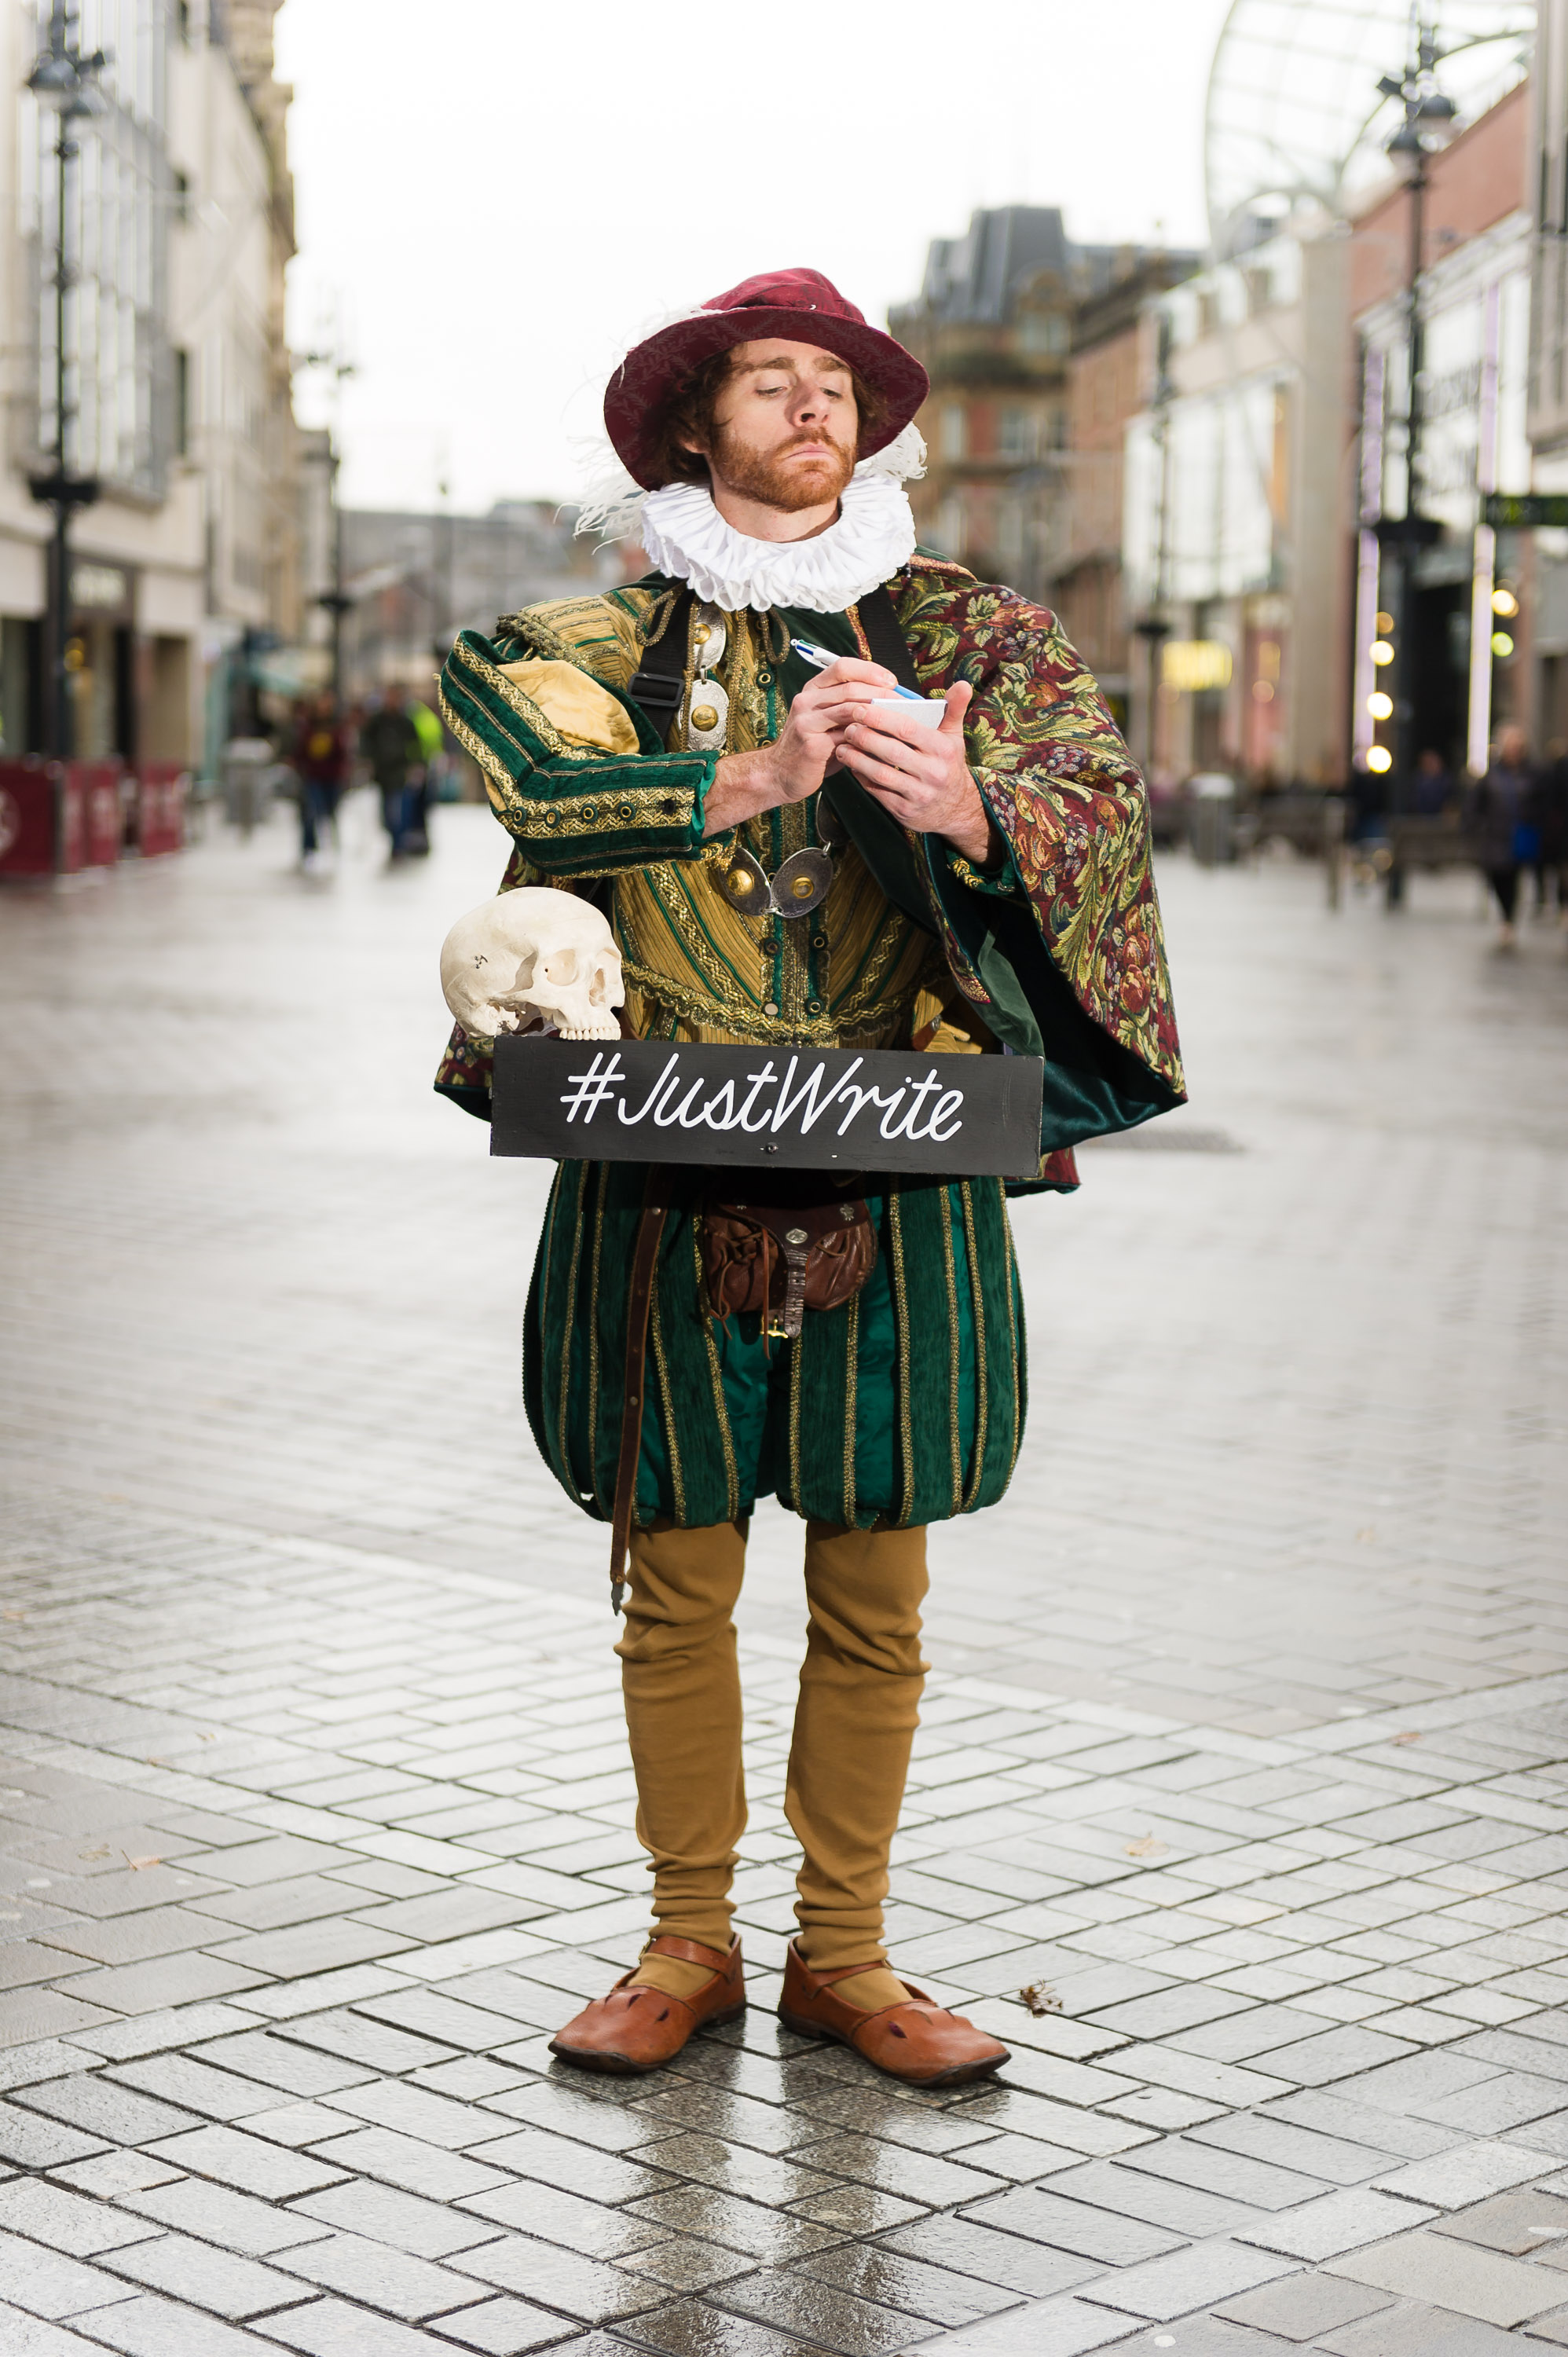 An actor dressed as William Shakespeare on a cobbled street.